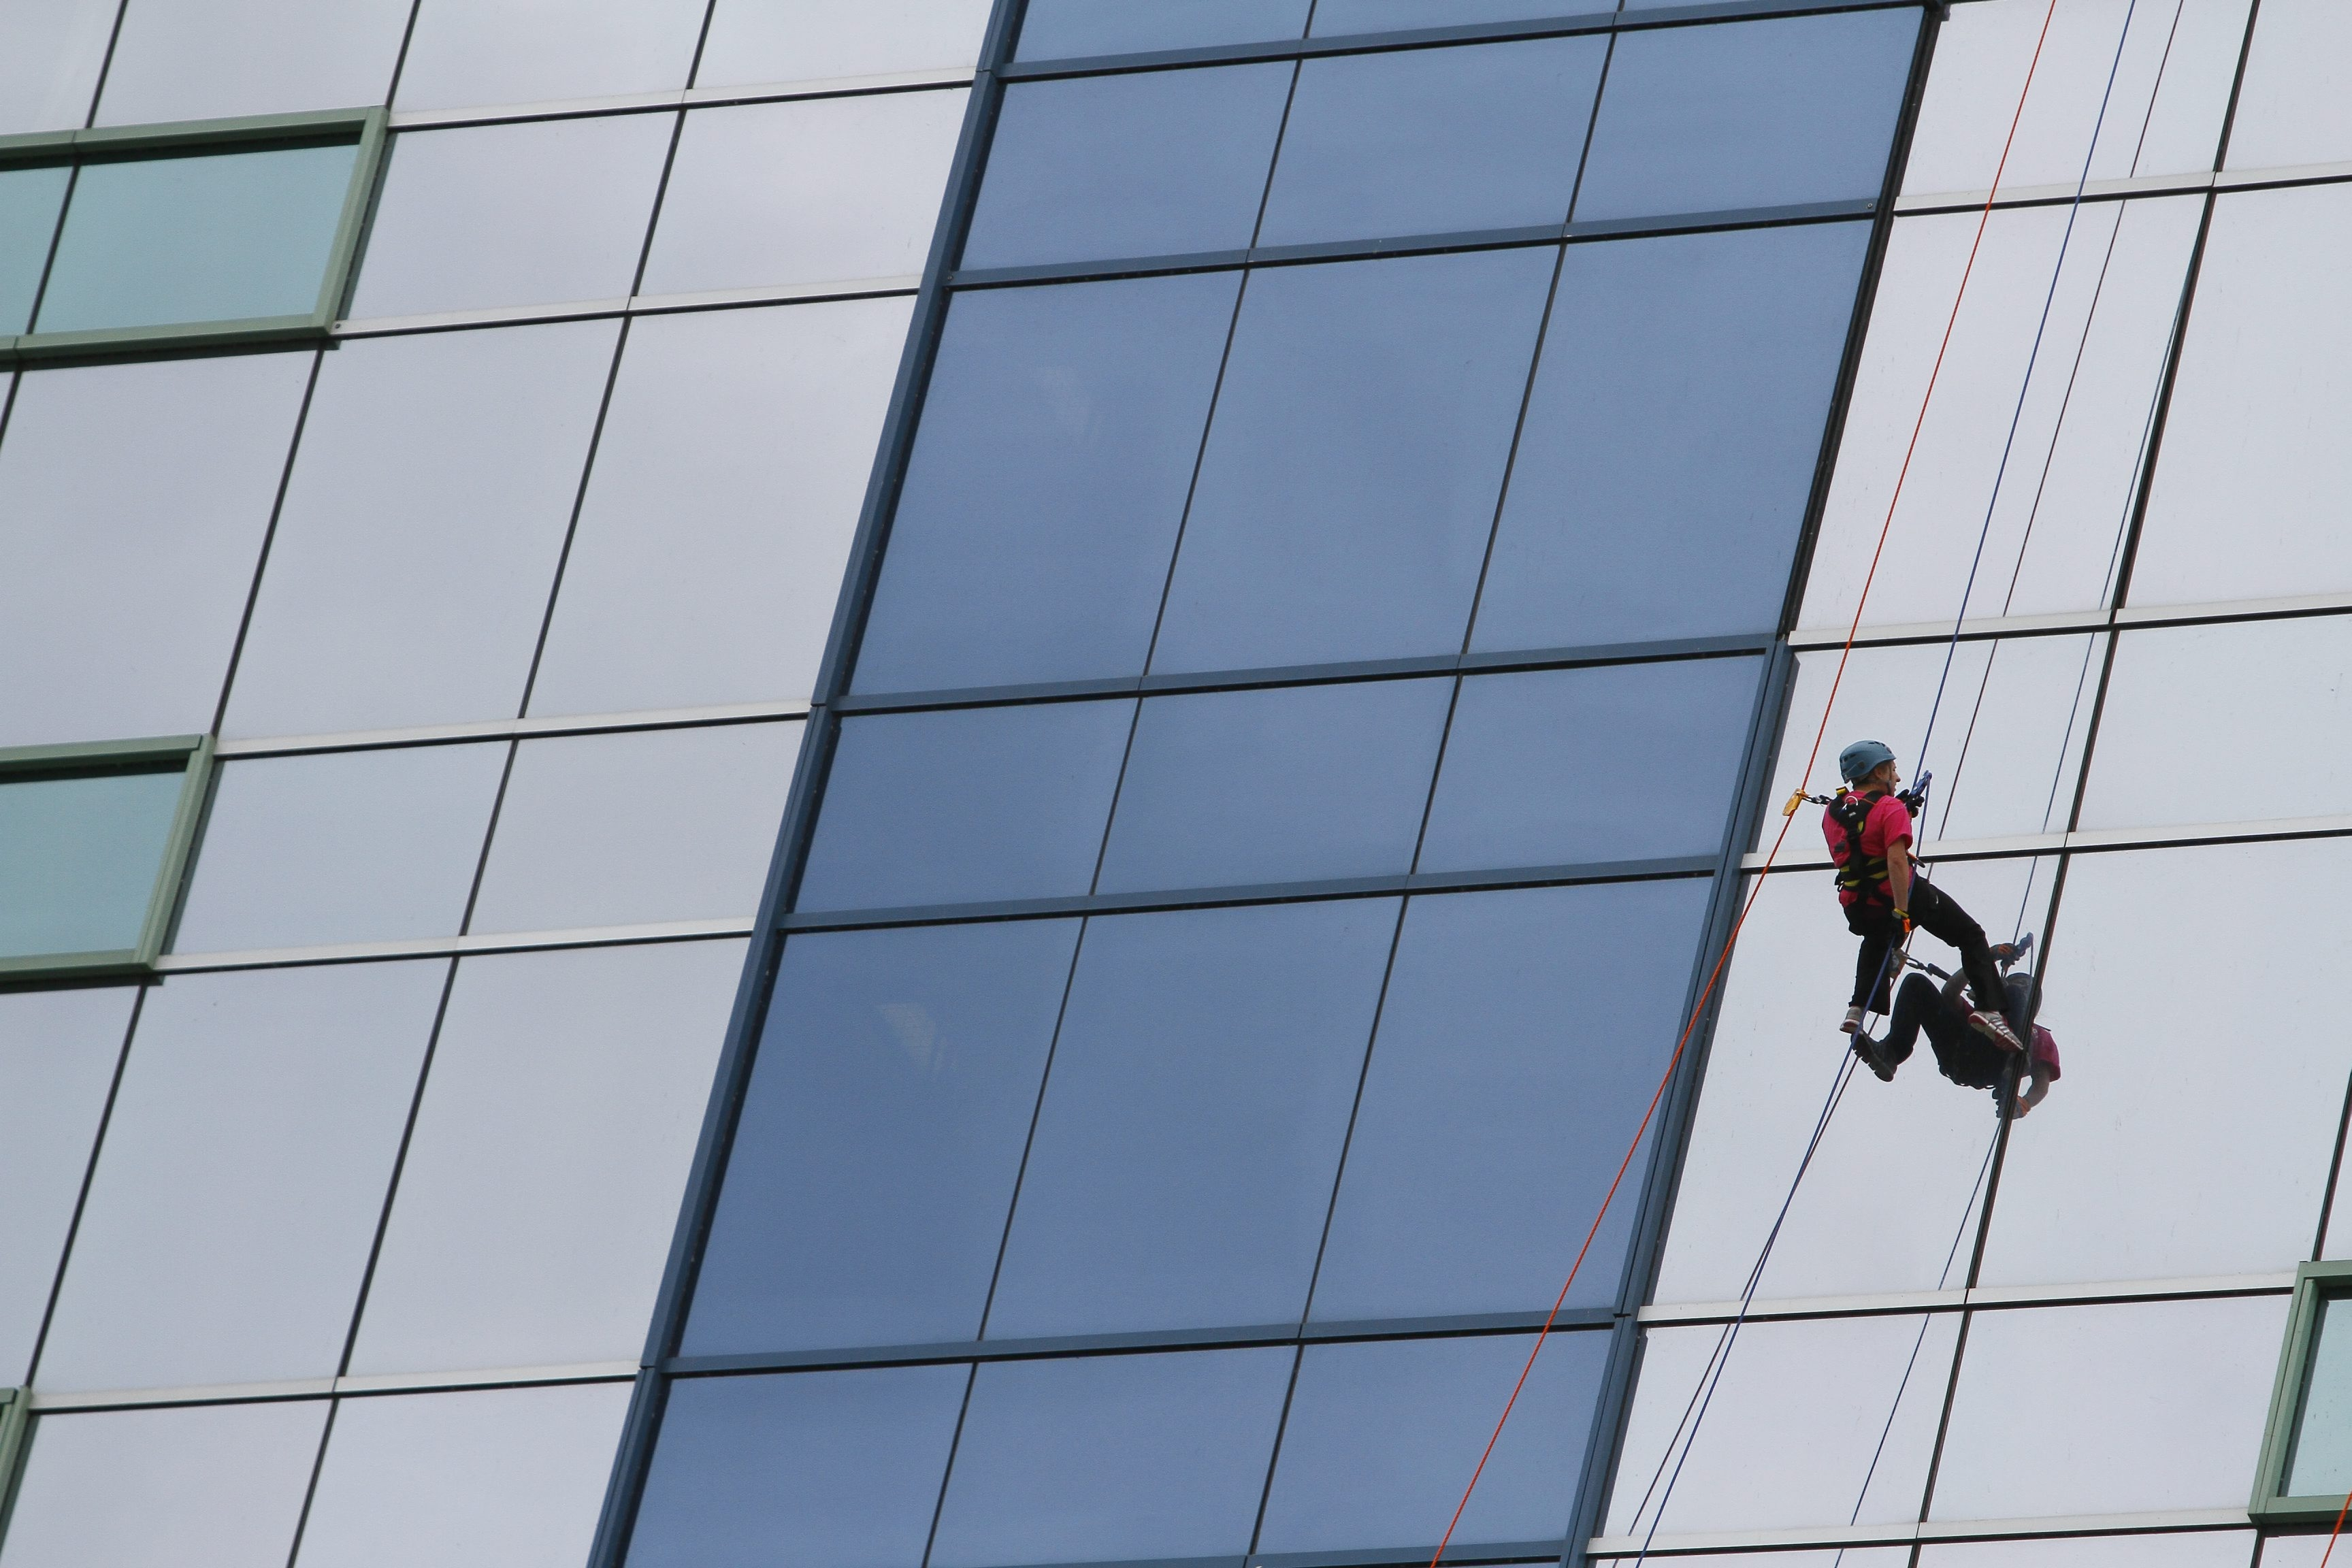 Buffalo News file photo shows a participant rappeling down the side of the Seneca Niagara Casino in the 2012 benefit for the Special Olympics.